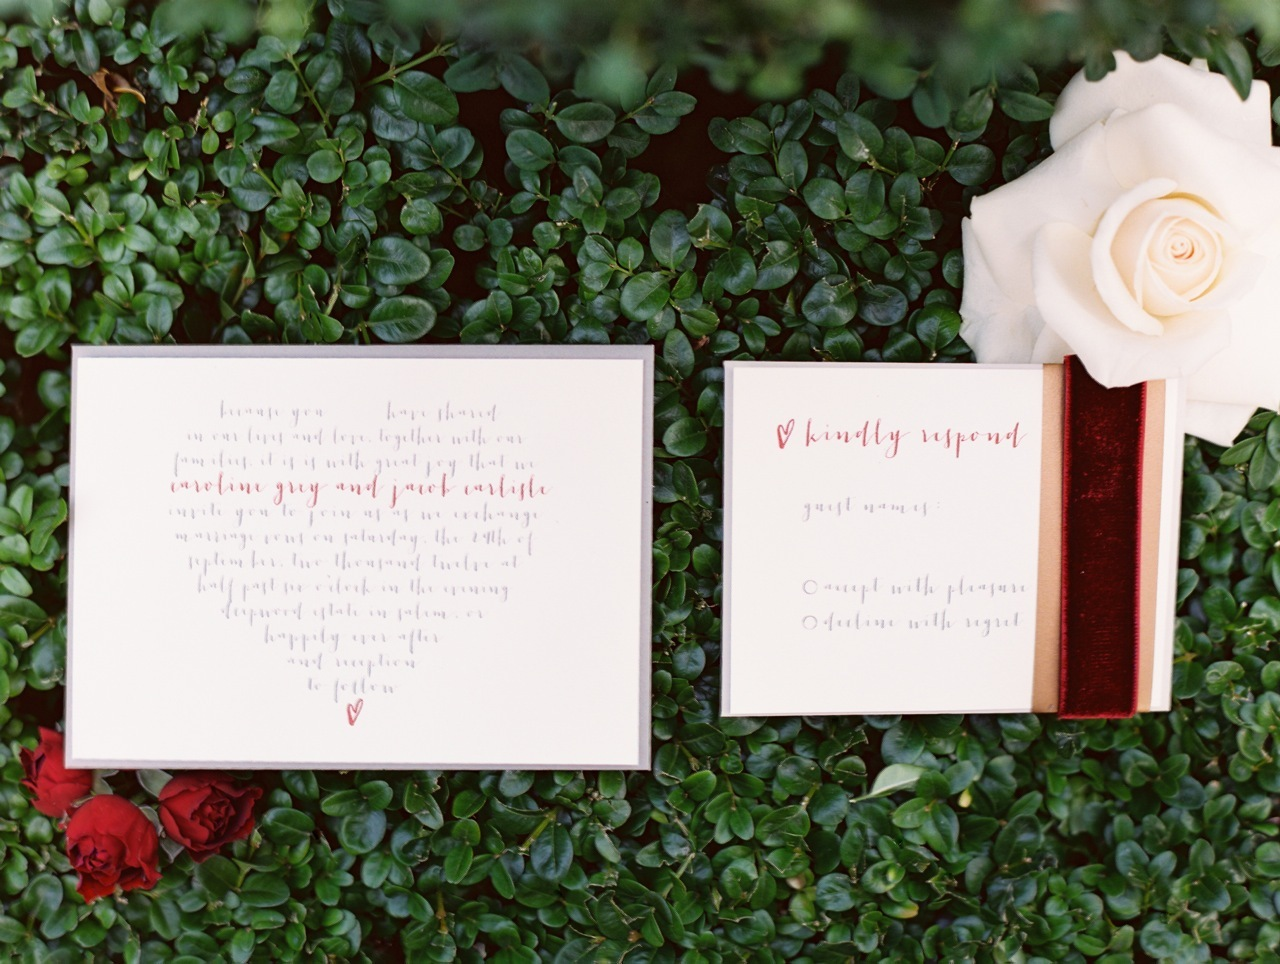 Stationery, Invitations, Rose, Ribbon, Velvet, Love poems styled wedding